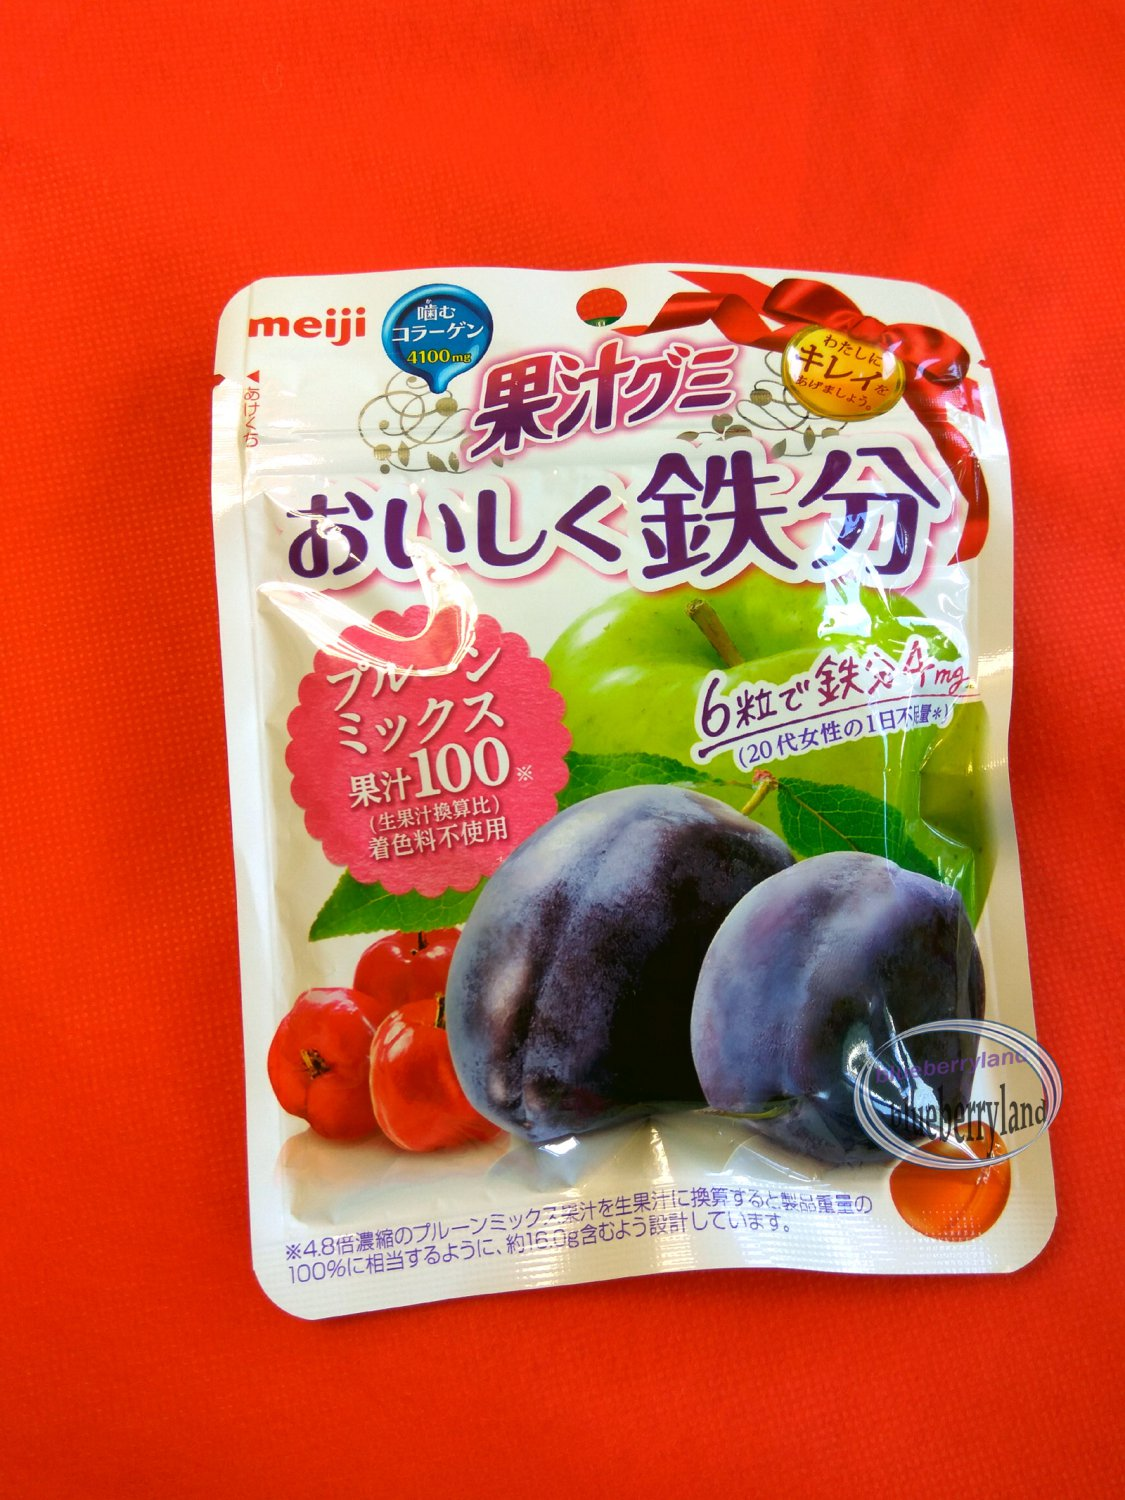 Japan Meiji Fruity Gummy Iron Prune Collagen candy sweet snack candies gummy